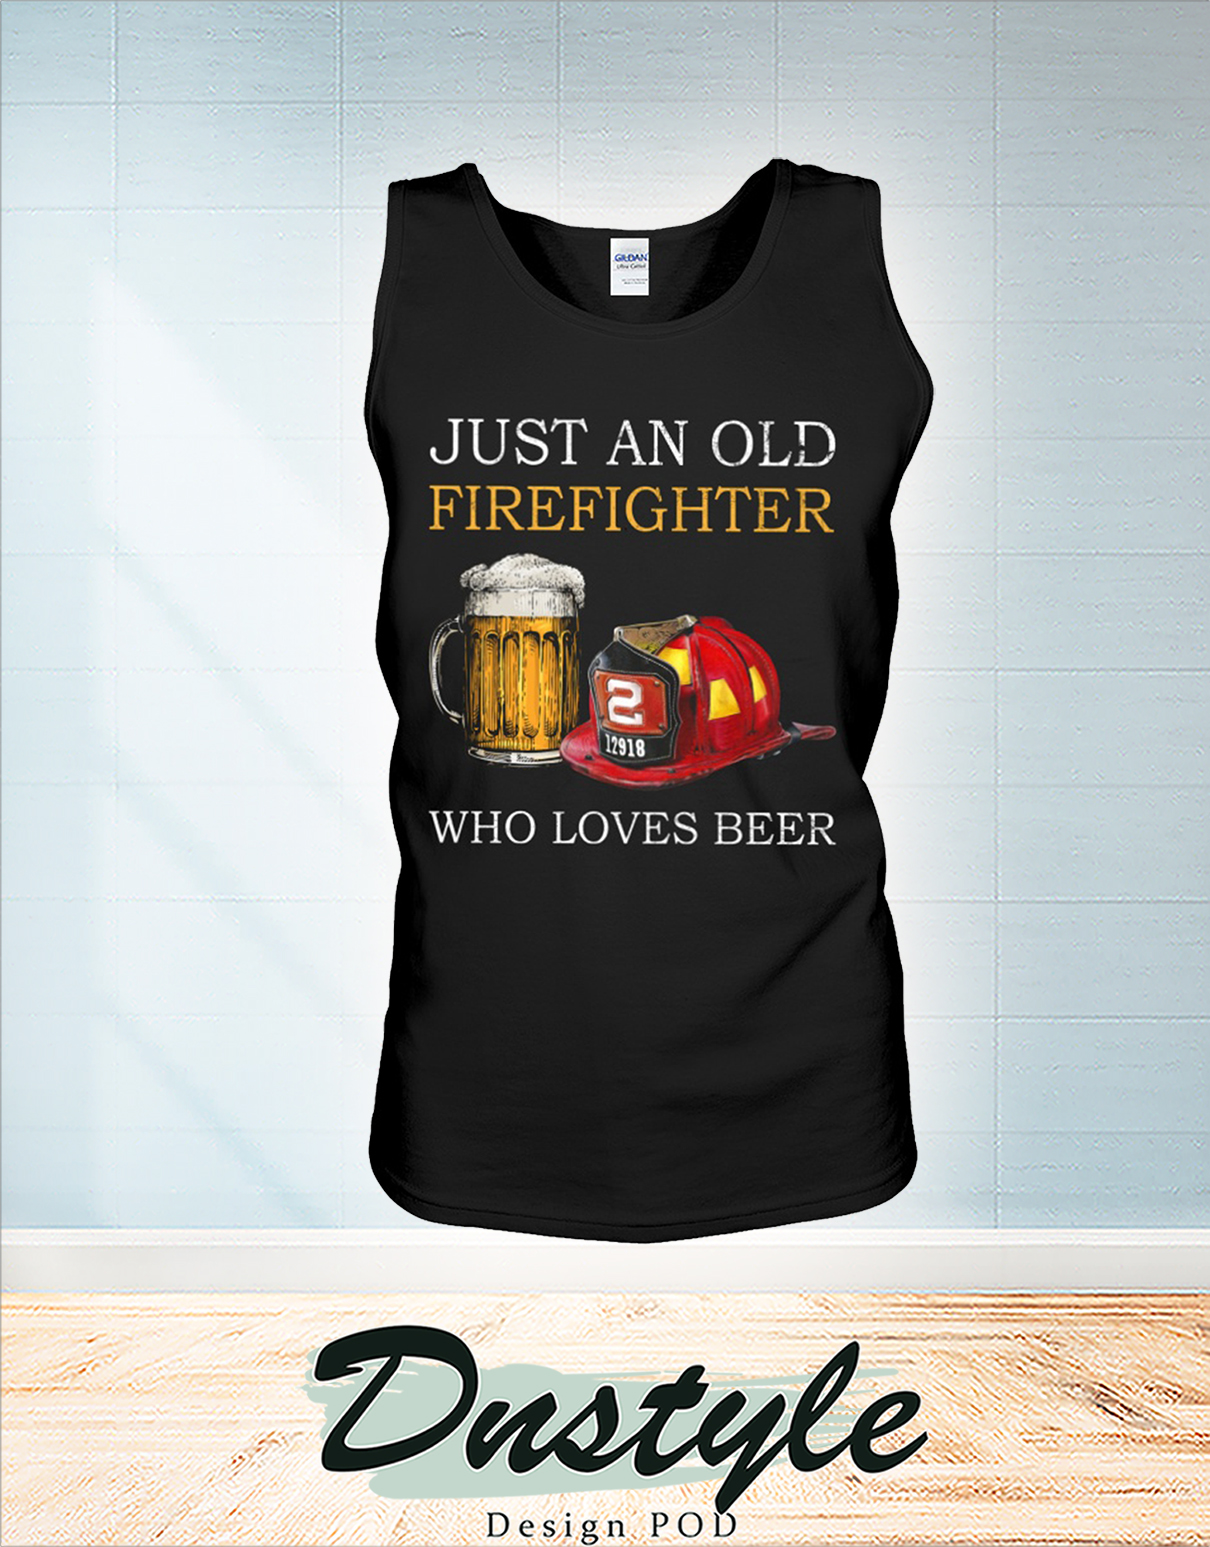 Just an old firefighter who loves beer tank